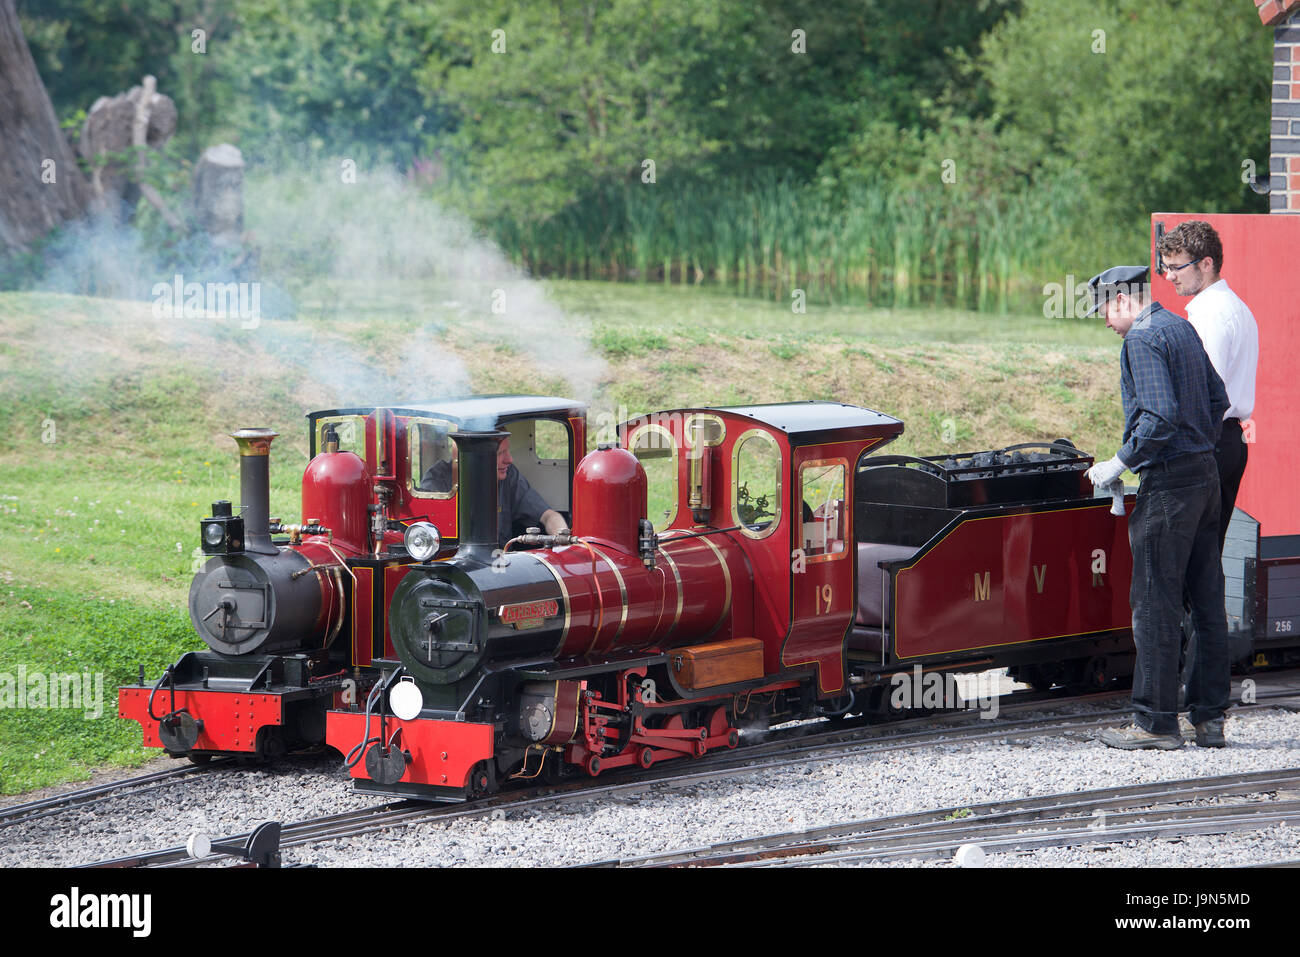 Narrow gauge steam locomotive Stock Photo: 143680333 - Alamy